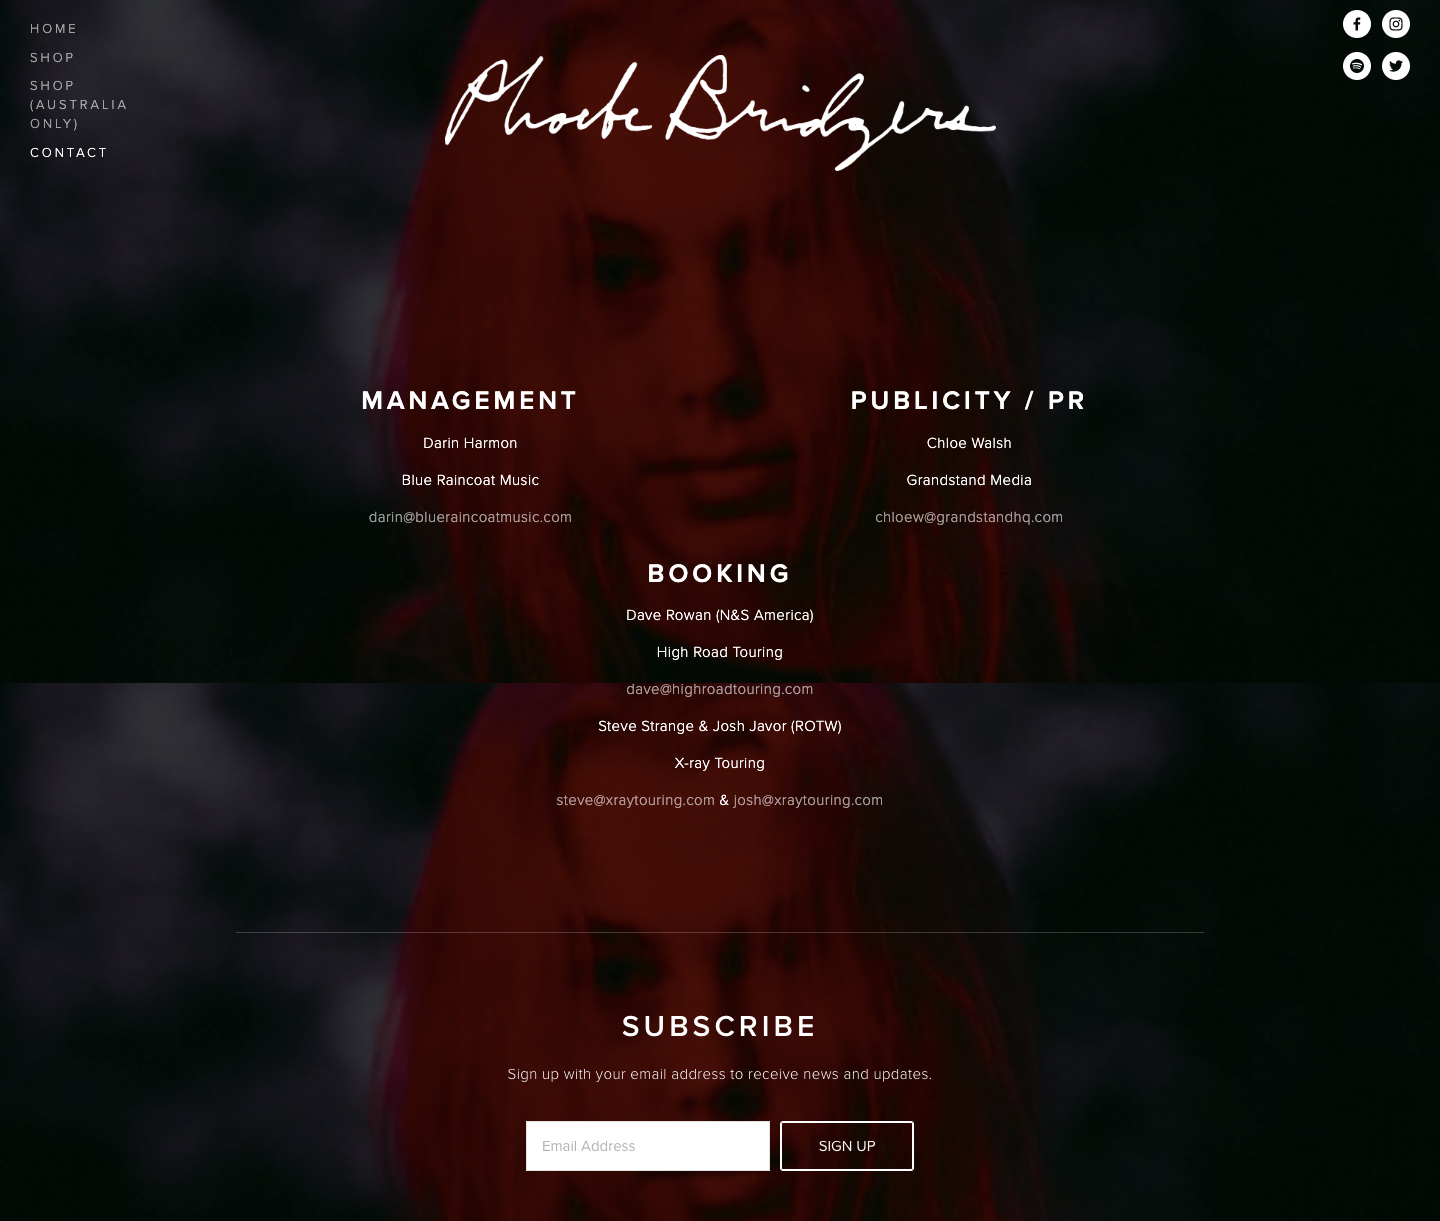 Page contact d'un site web de musicien - Pheobe Bridgers